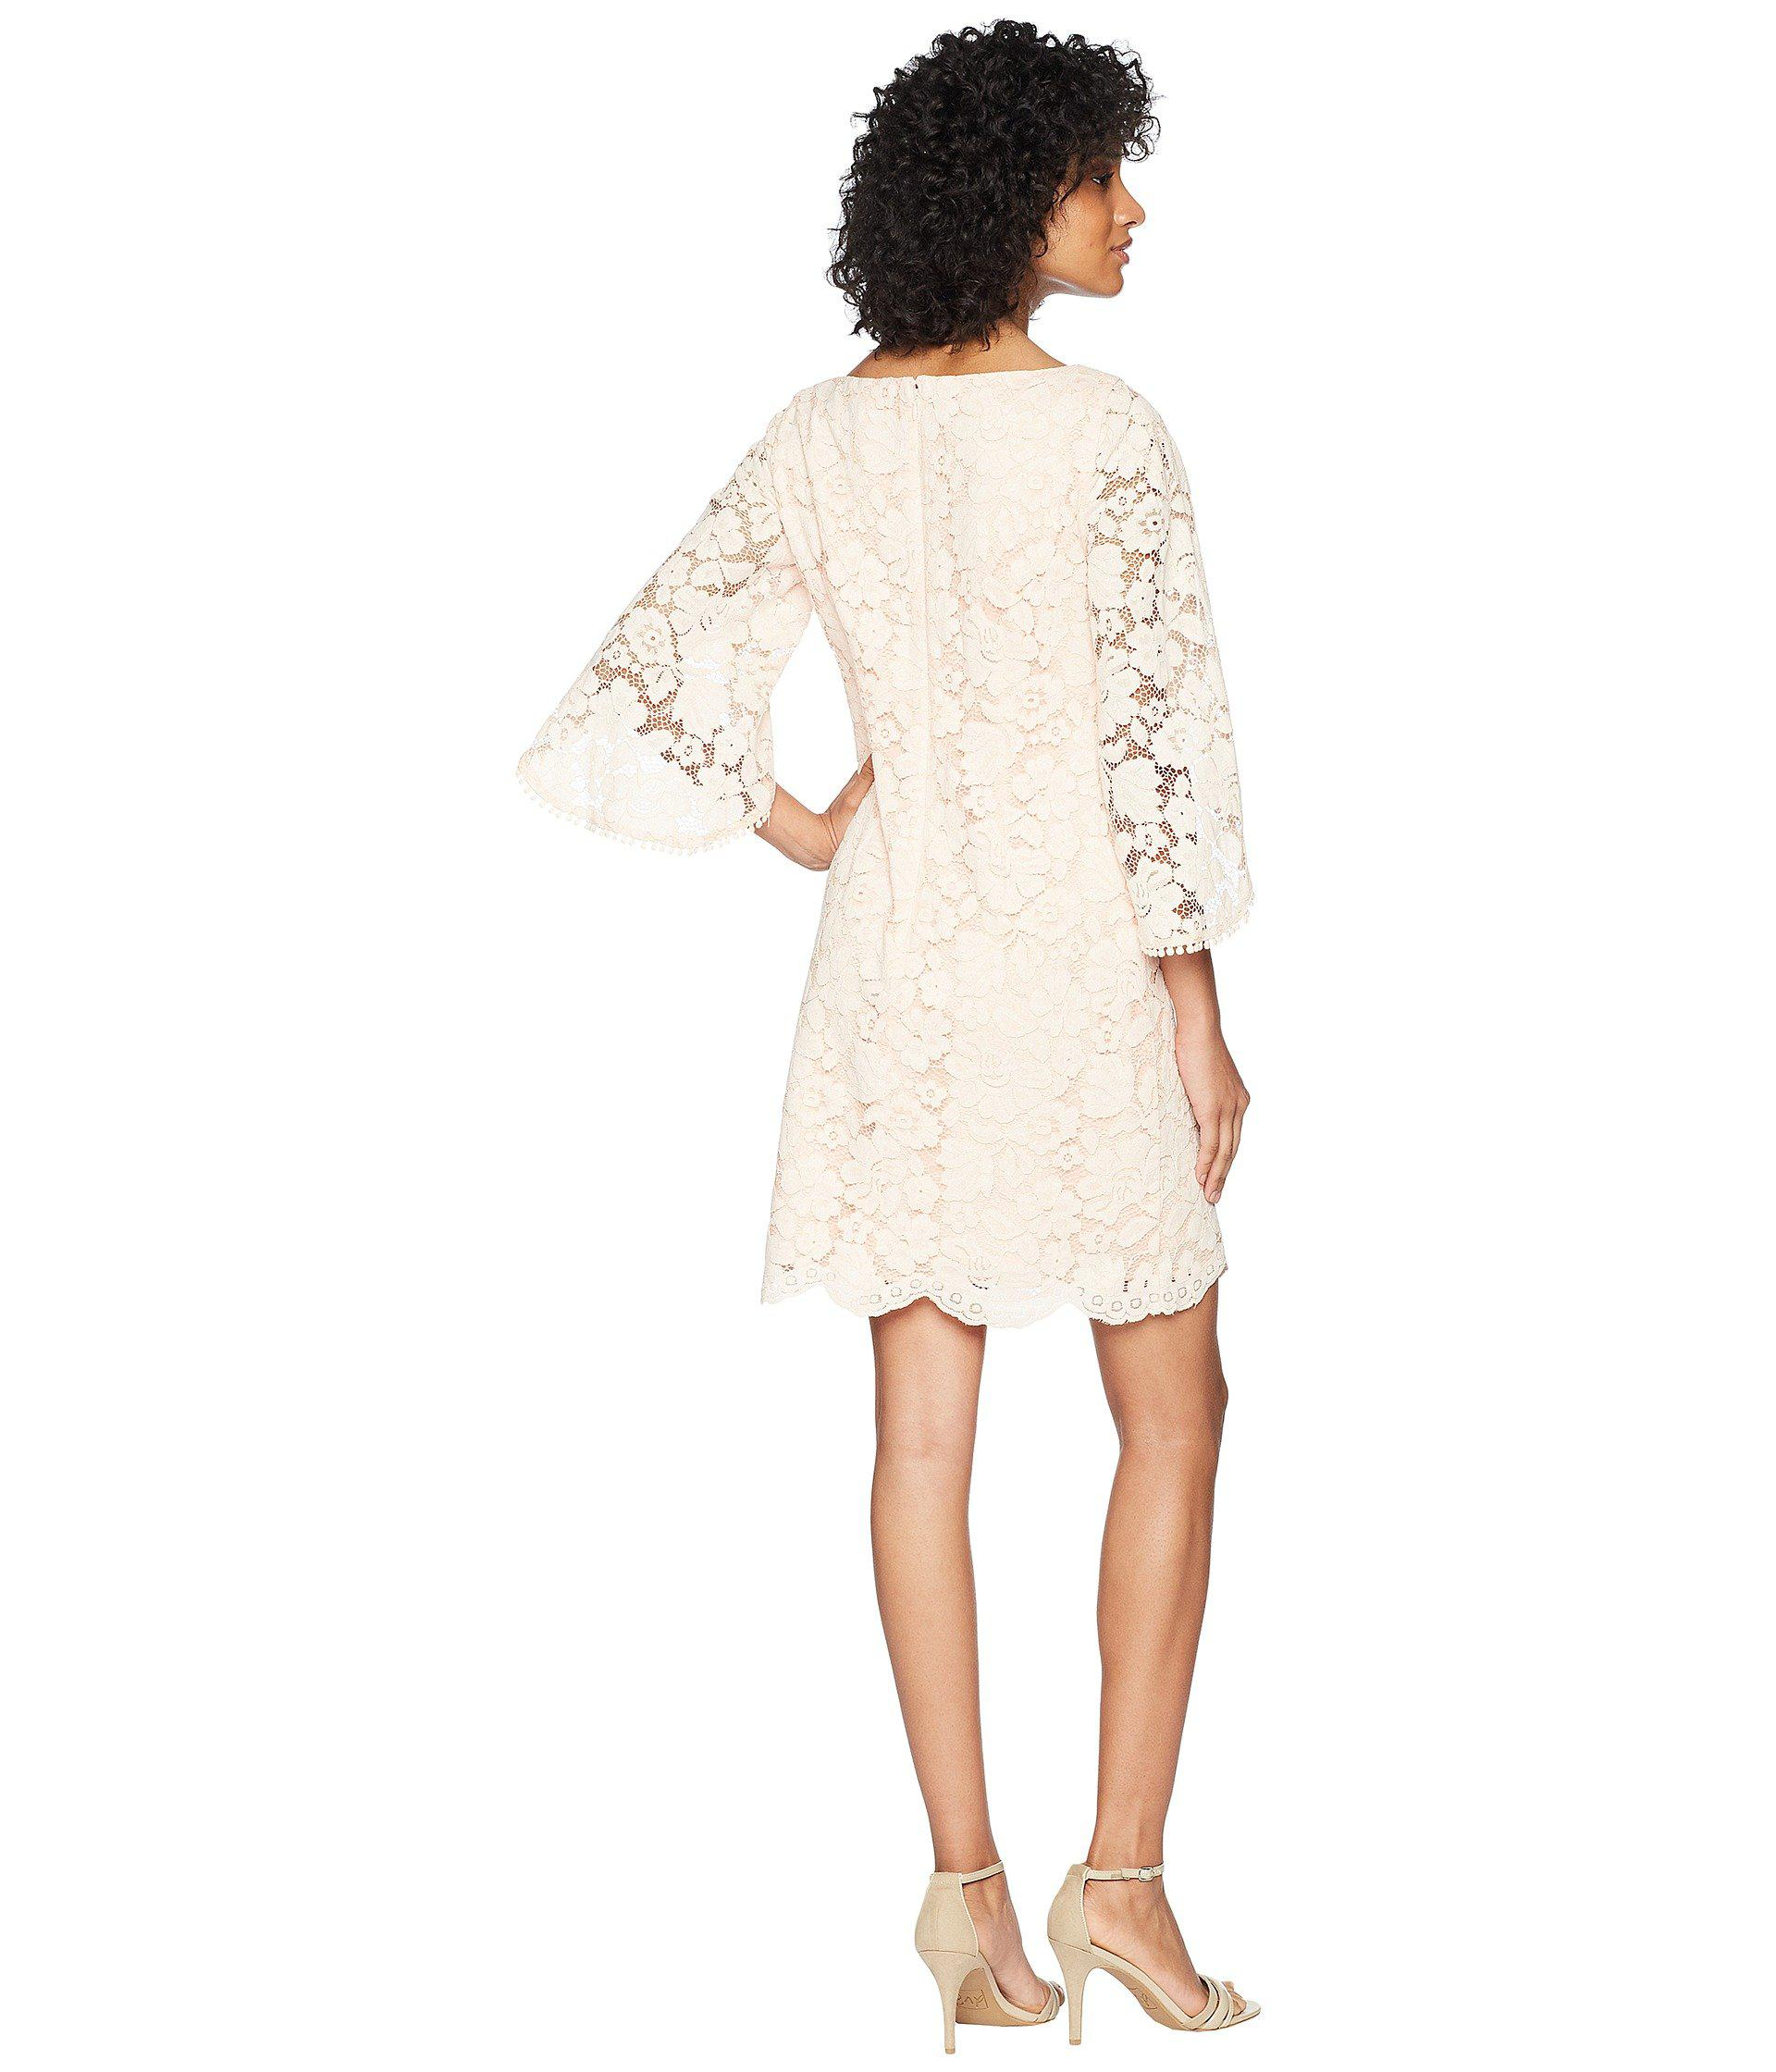 5e07a1eea1b3 Vince Camuto Lace Shift Dress With Overlap Sleeves - Lyst